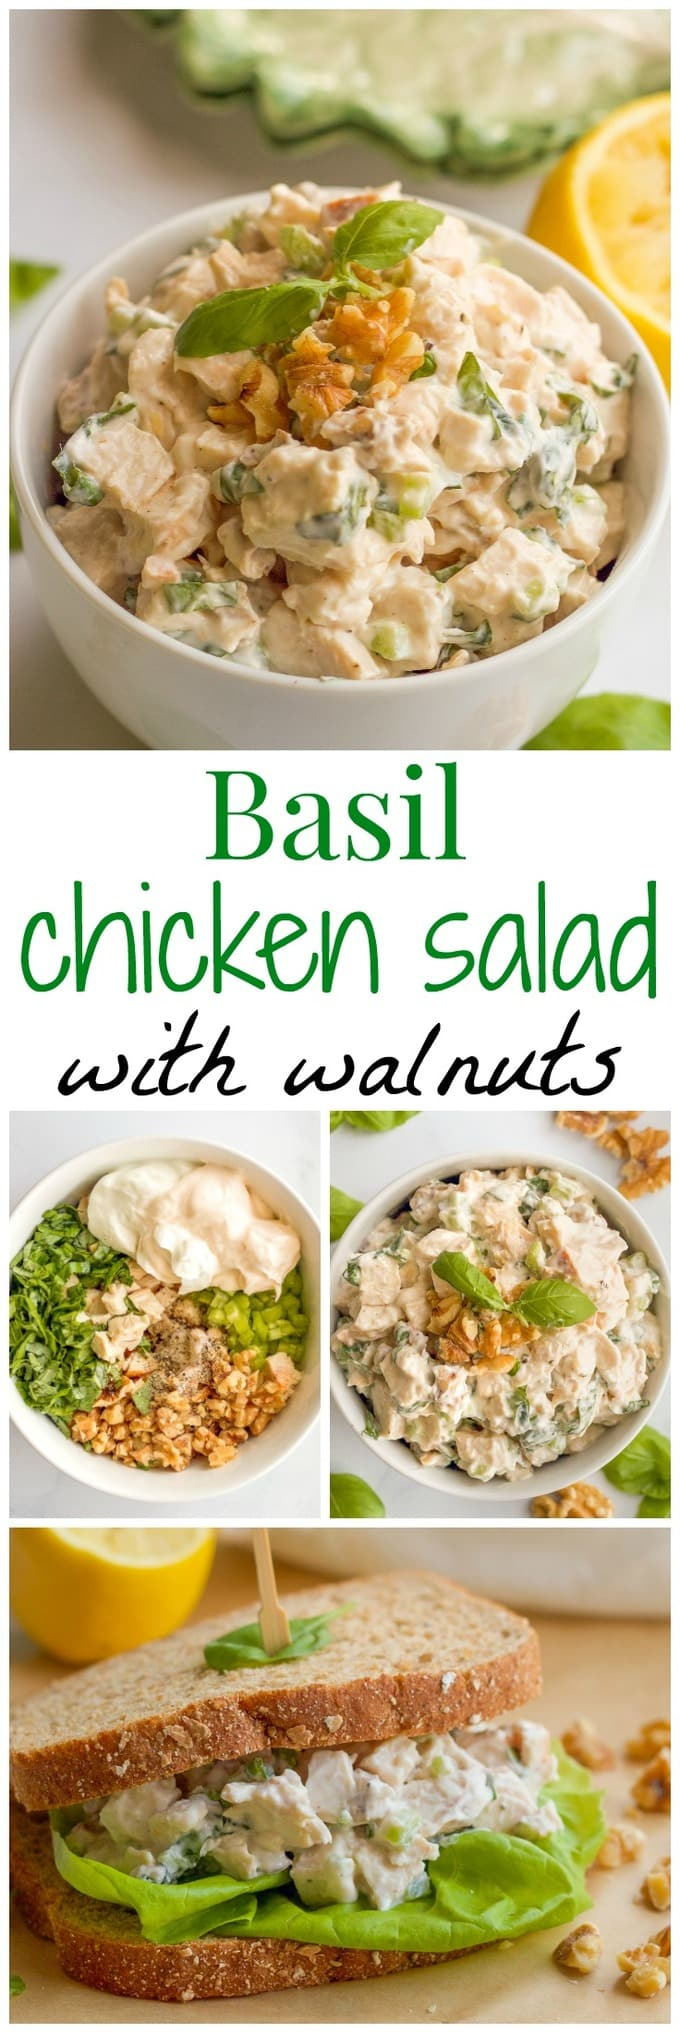 A creamy but healthy basil chicken salad with fresh basil and chopped walnuts - great as a sandwich, wrap or lettuce wrap, or paired with crackers! | www.familyfoodonthetable.com